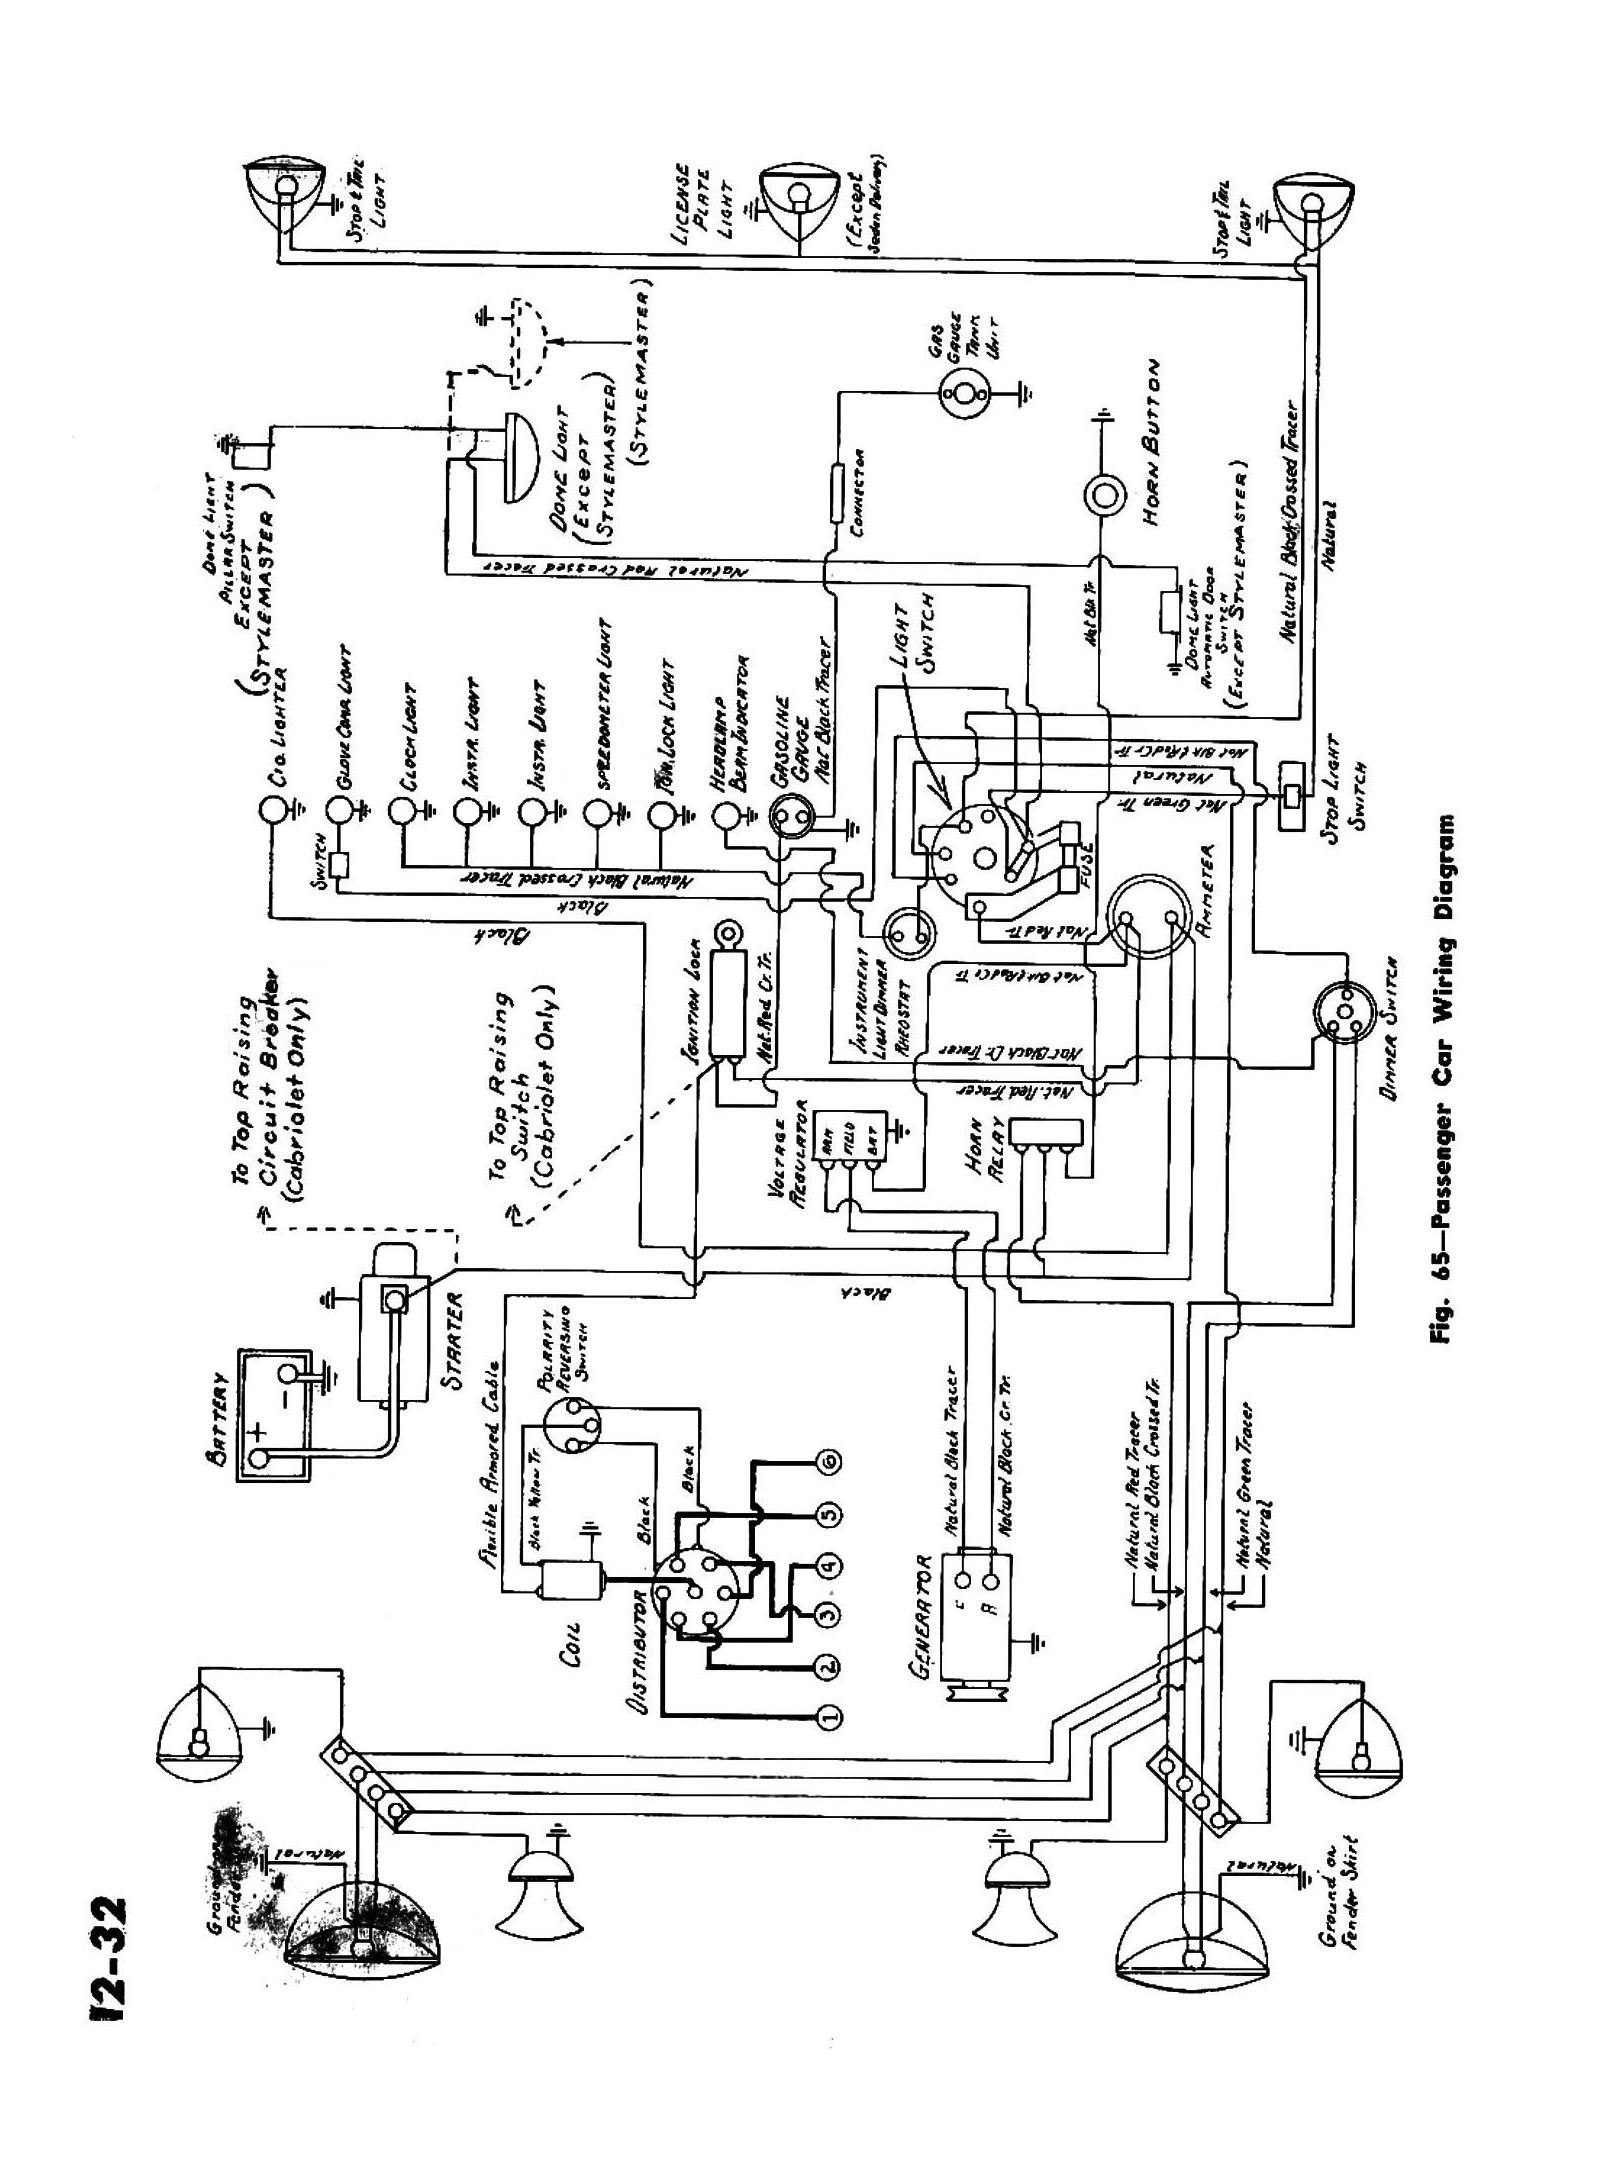 Chrysler Wiring Diagram Website Opinions About Town And Country Universal Car Schematics Rh Mychampagnedaze Com 2004 2003